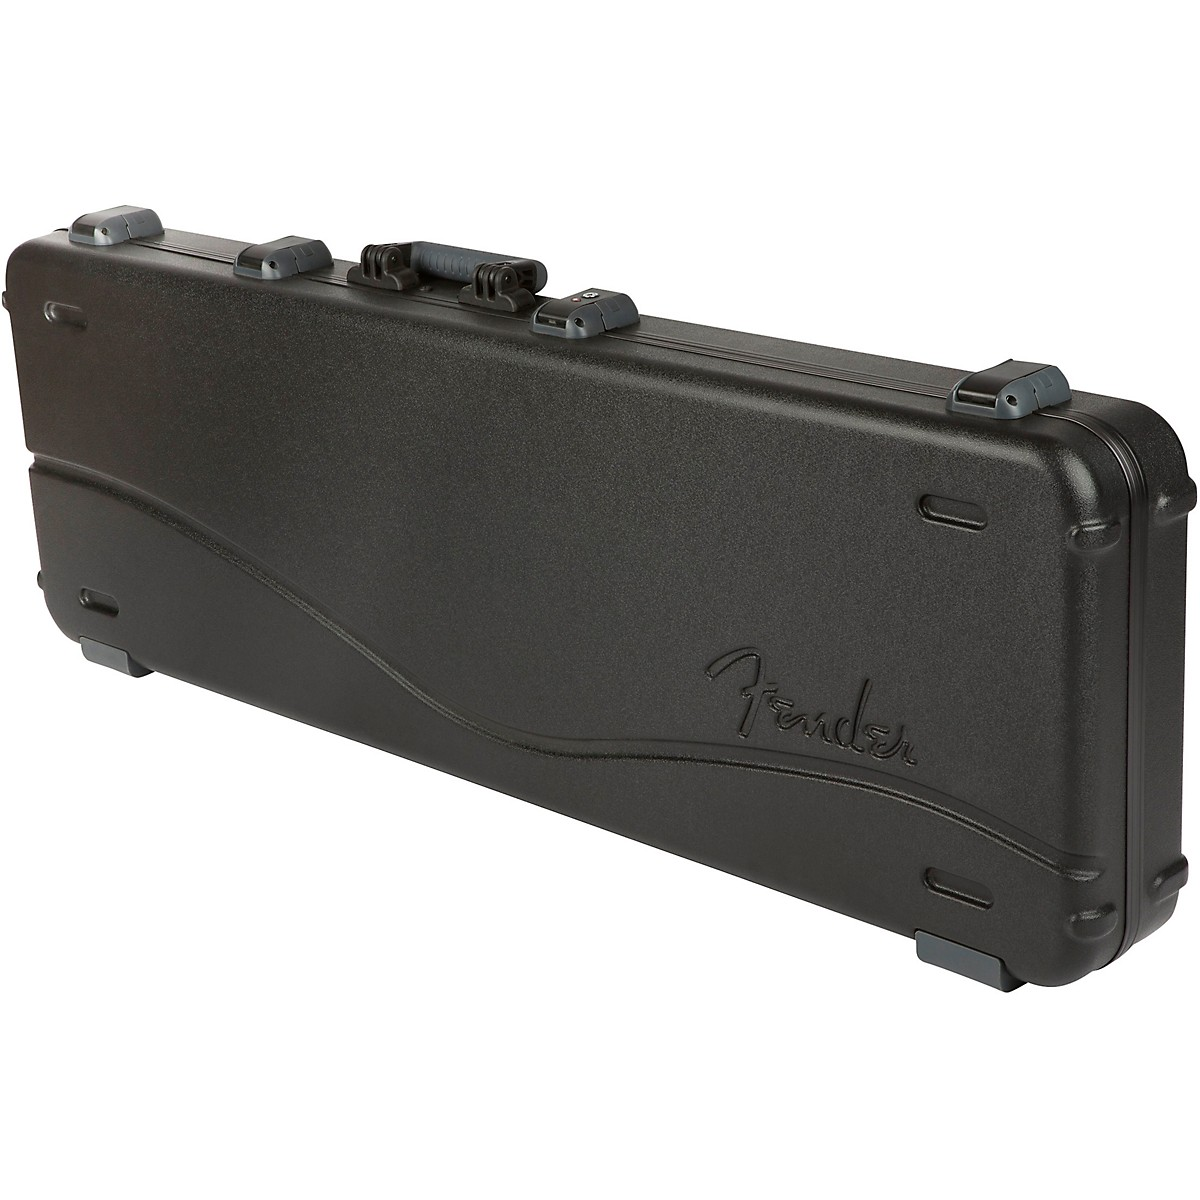 Fender Deluxe Molded ABS Left-Handed P/J Bass Guitar Case